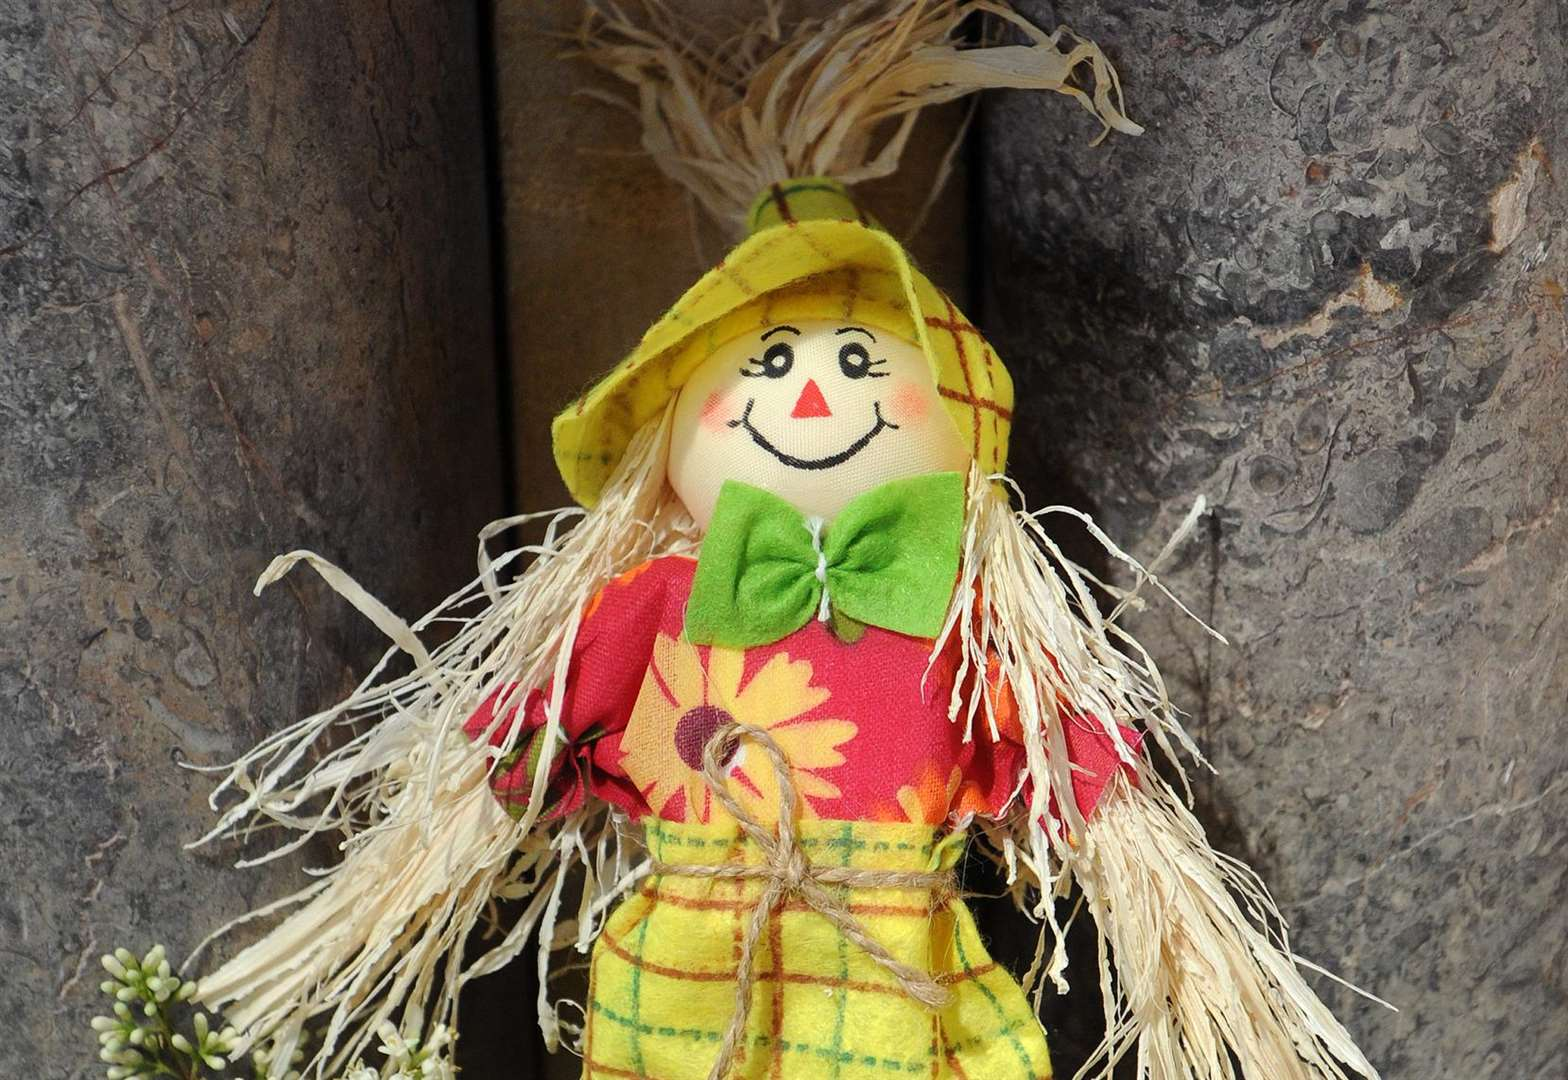 Head to Moulton for the annual garden crawl and scarecrow weekend